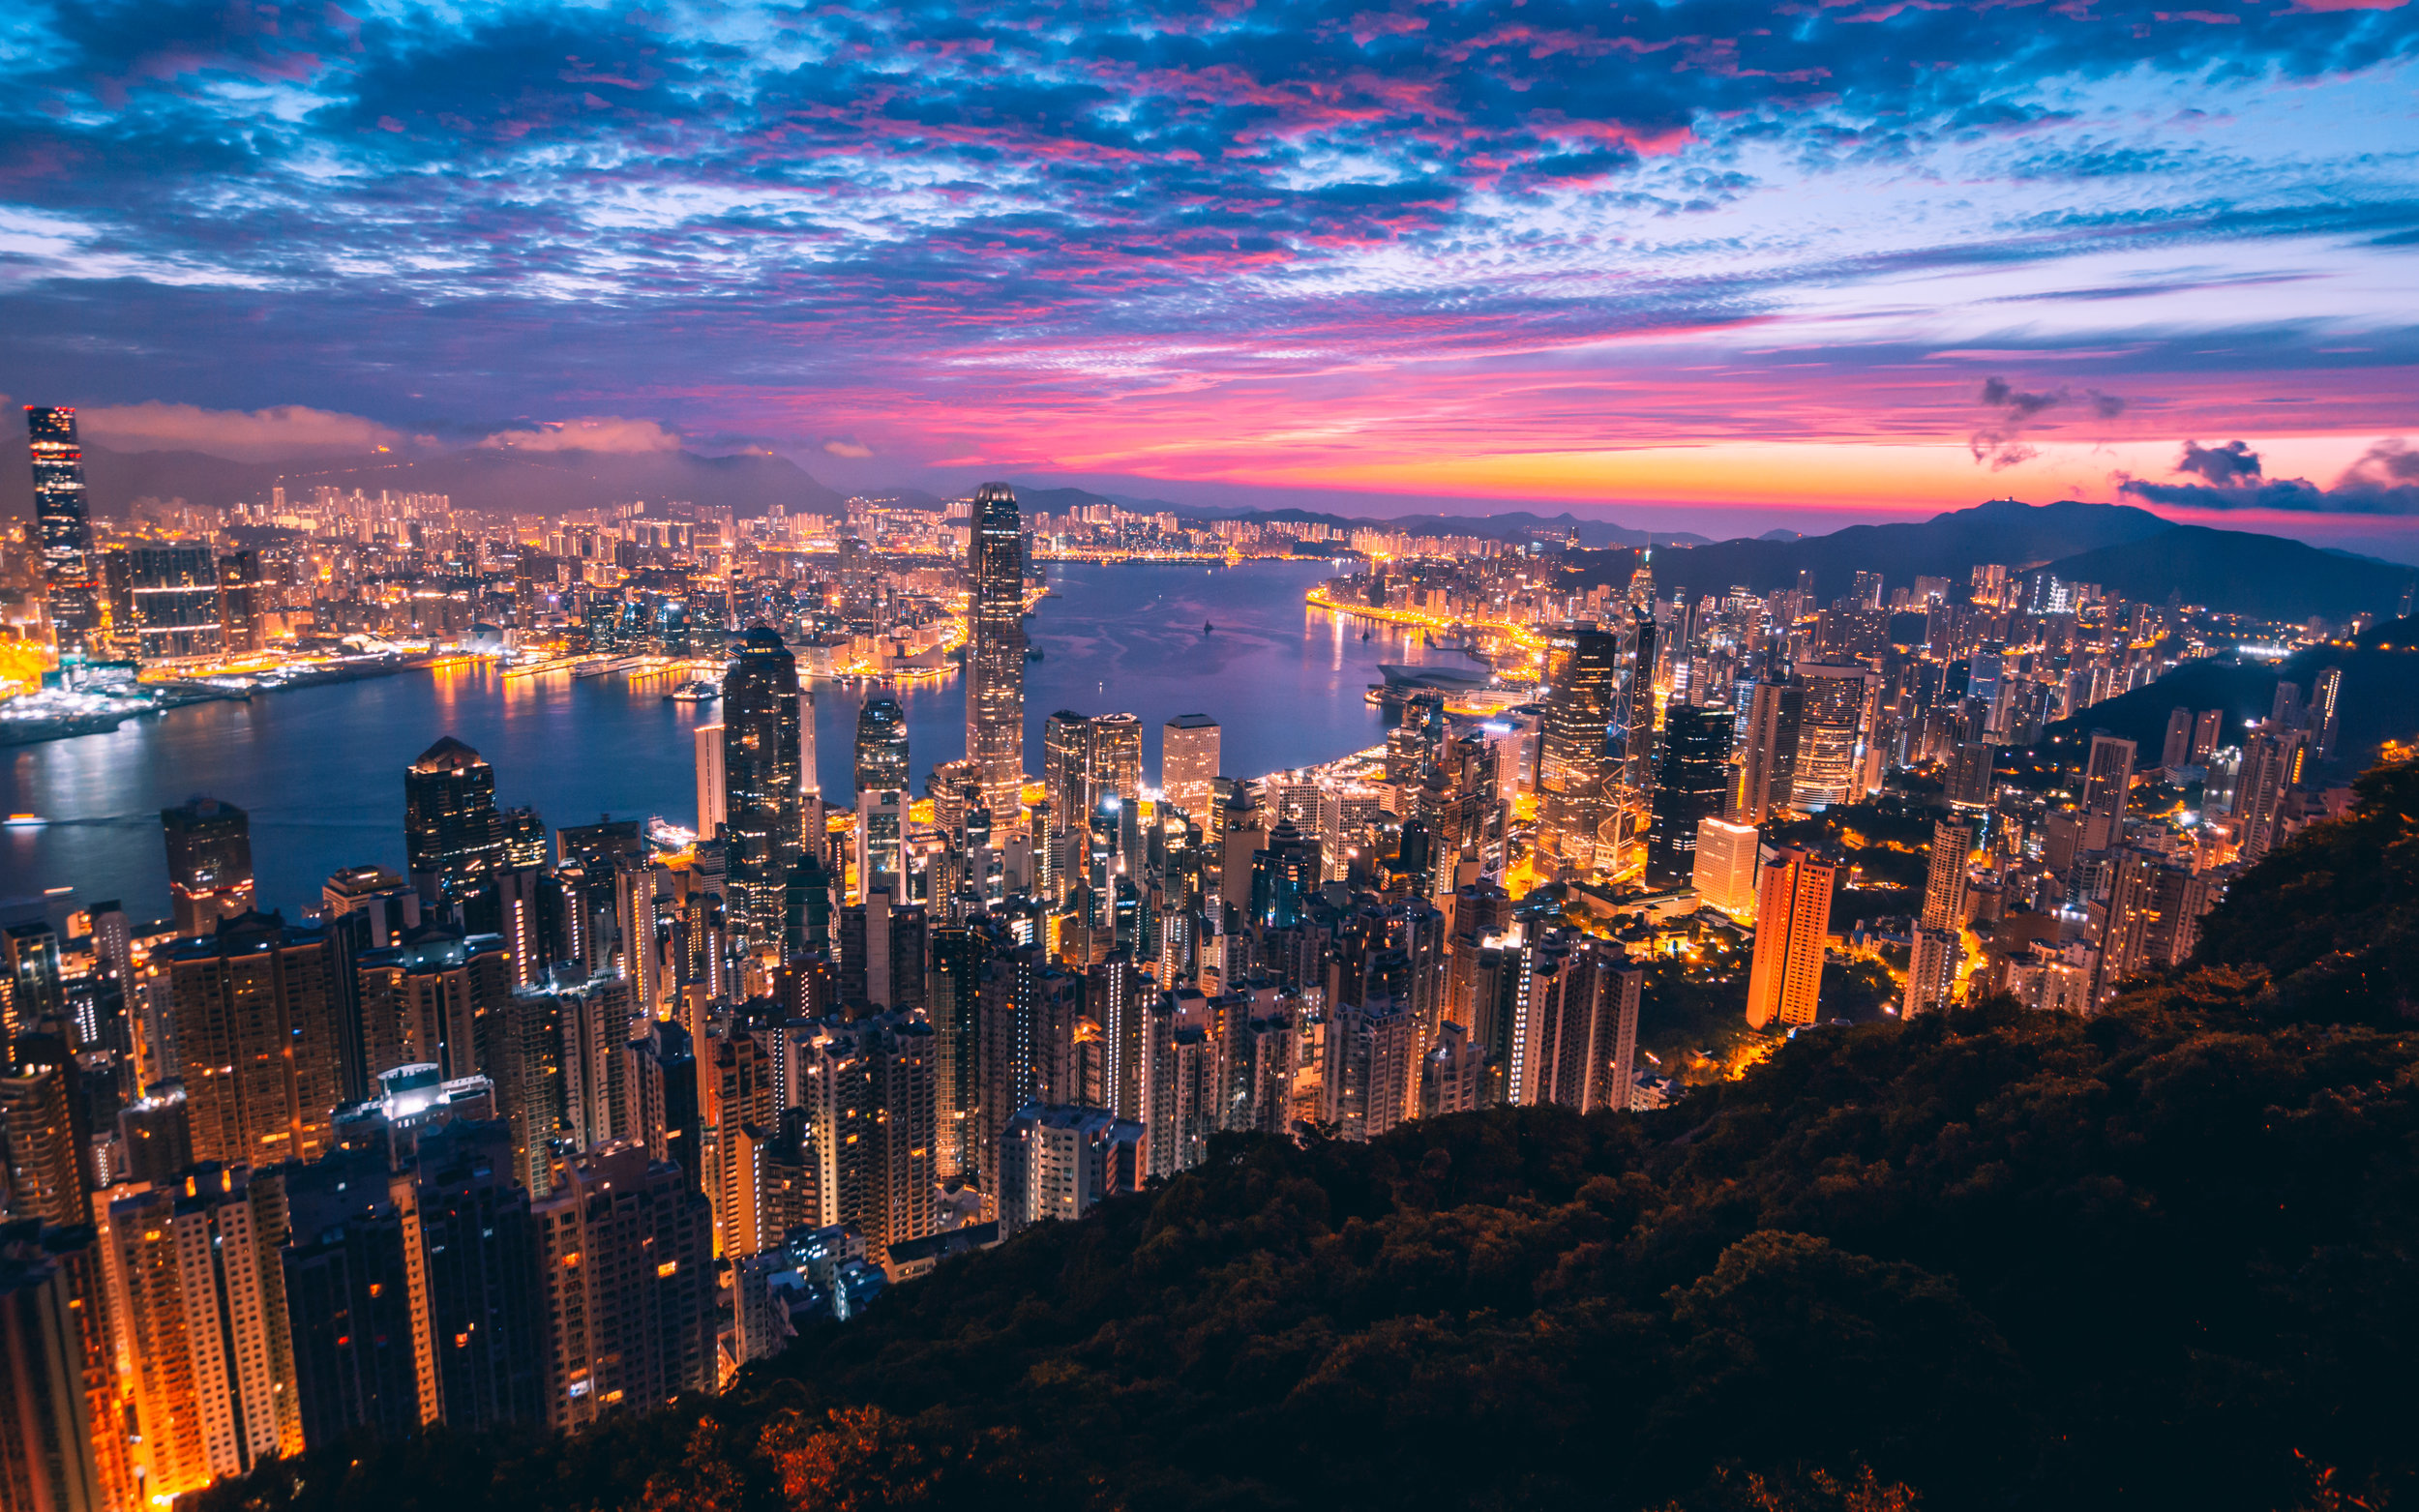 There are fears that the protests will damage Hong Kong's reputation as a global economic hub